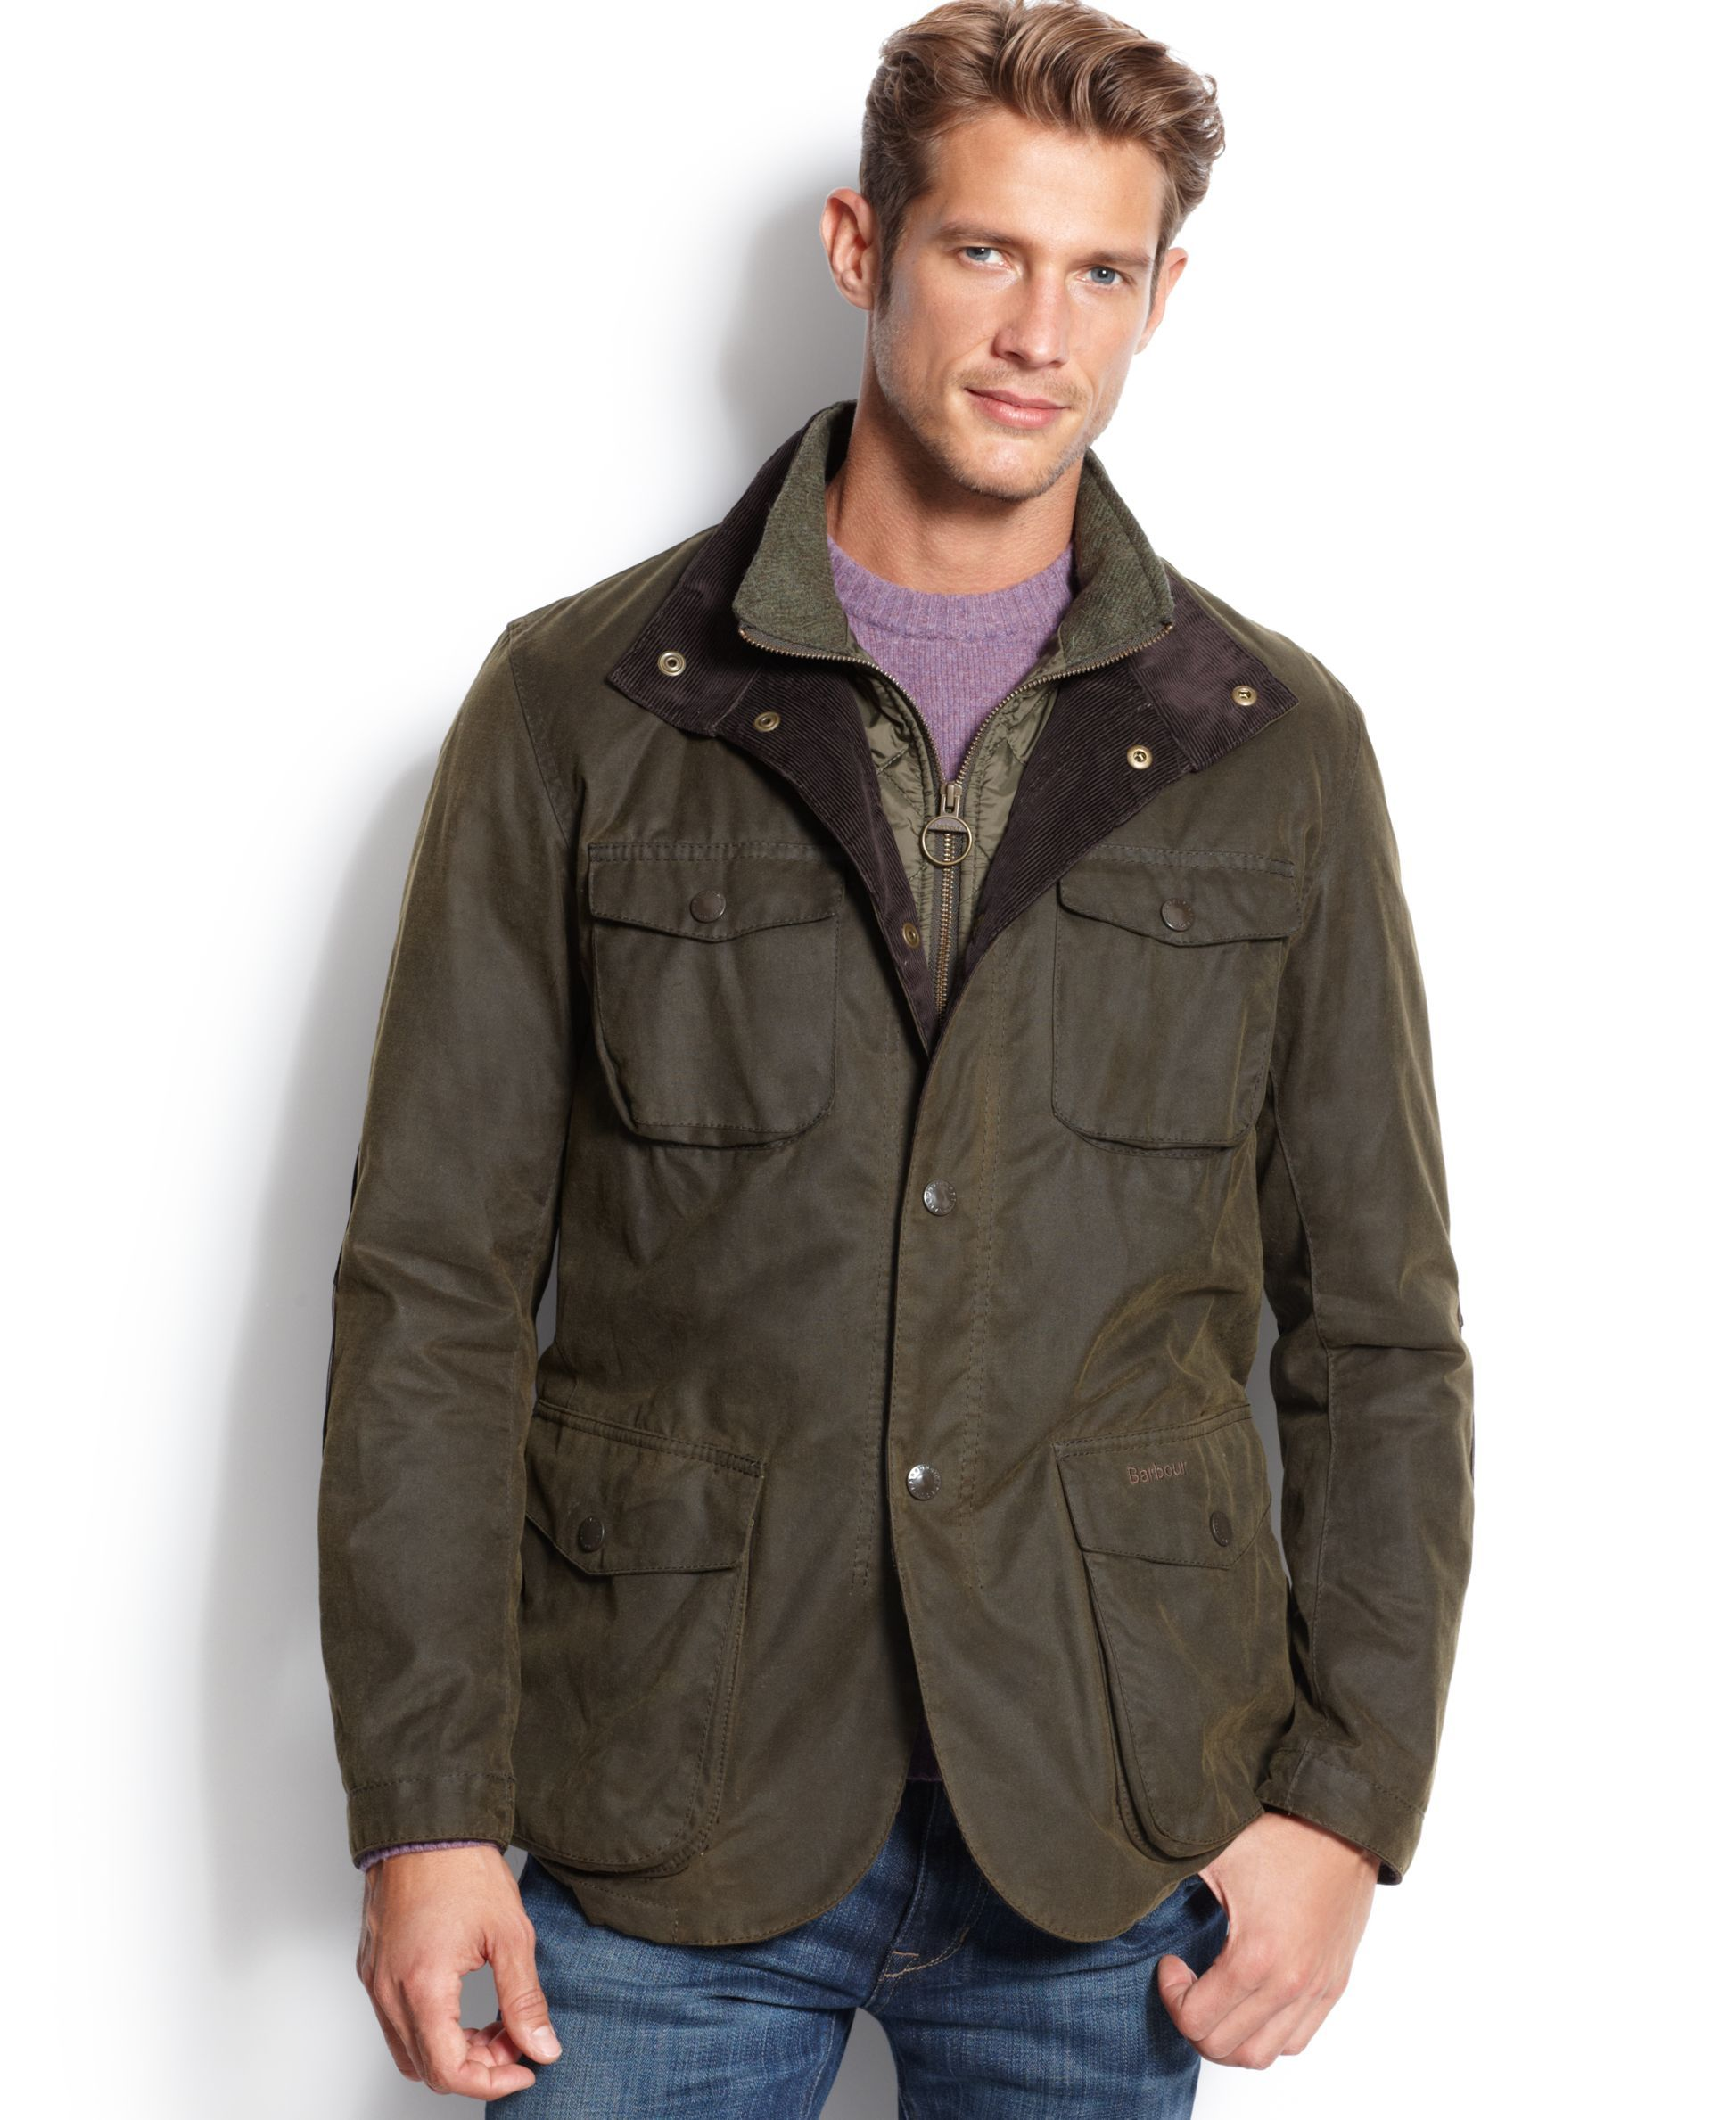 Barbour Ogston Waxed Jacket   G   Pinterest   Wax jackets, Barbour ... f22aa766cee7